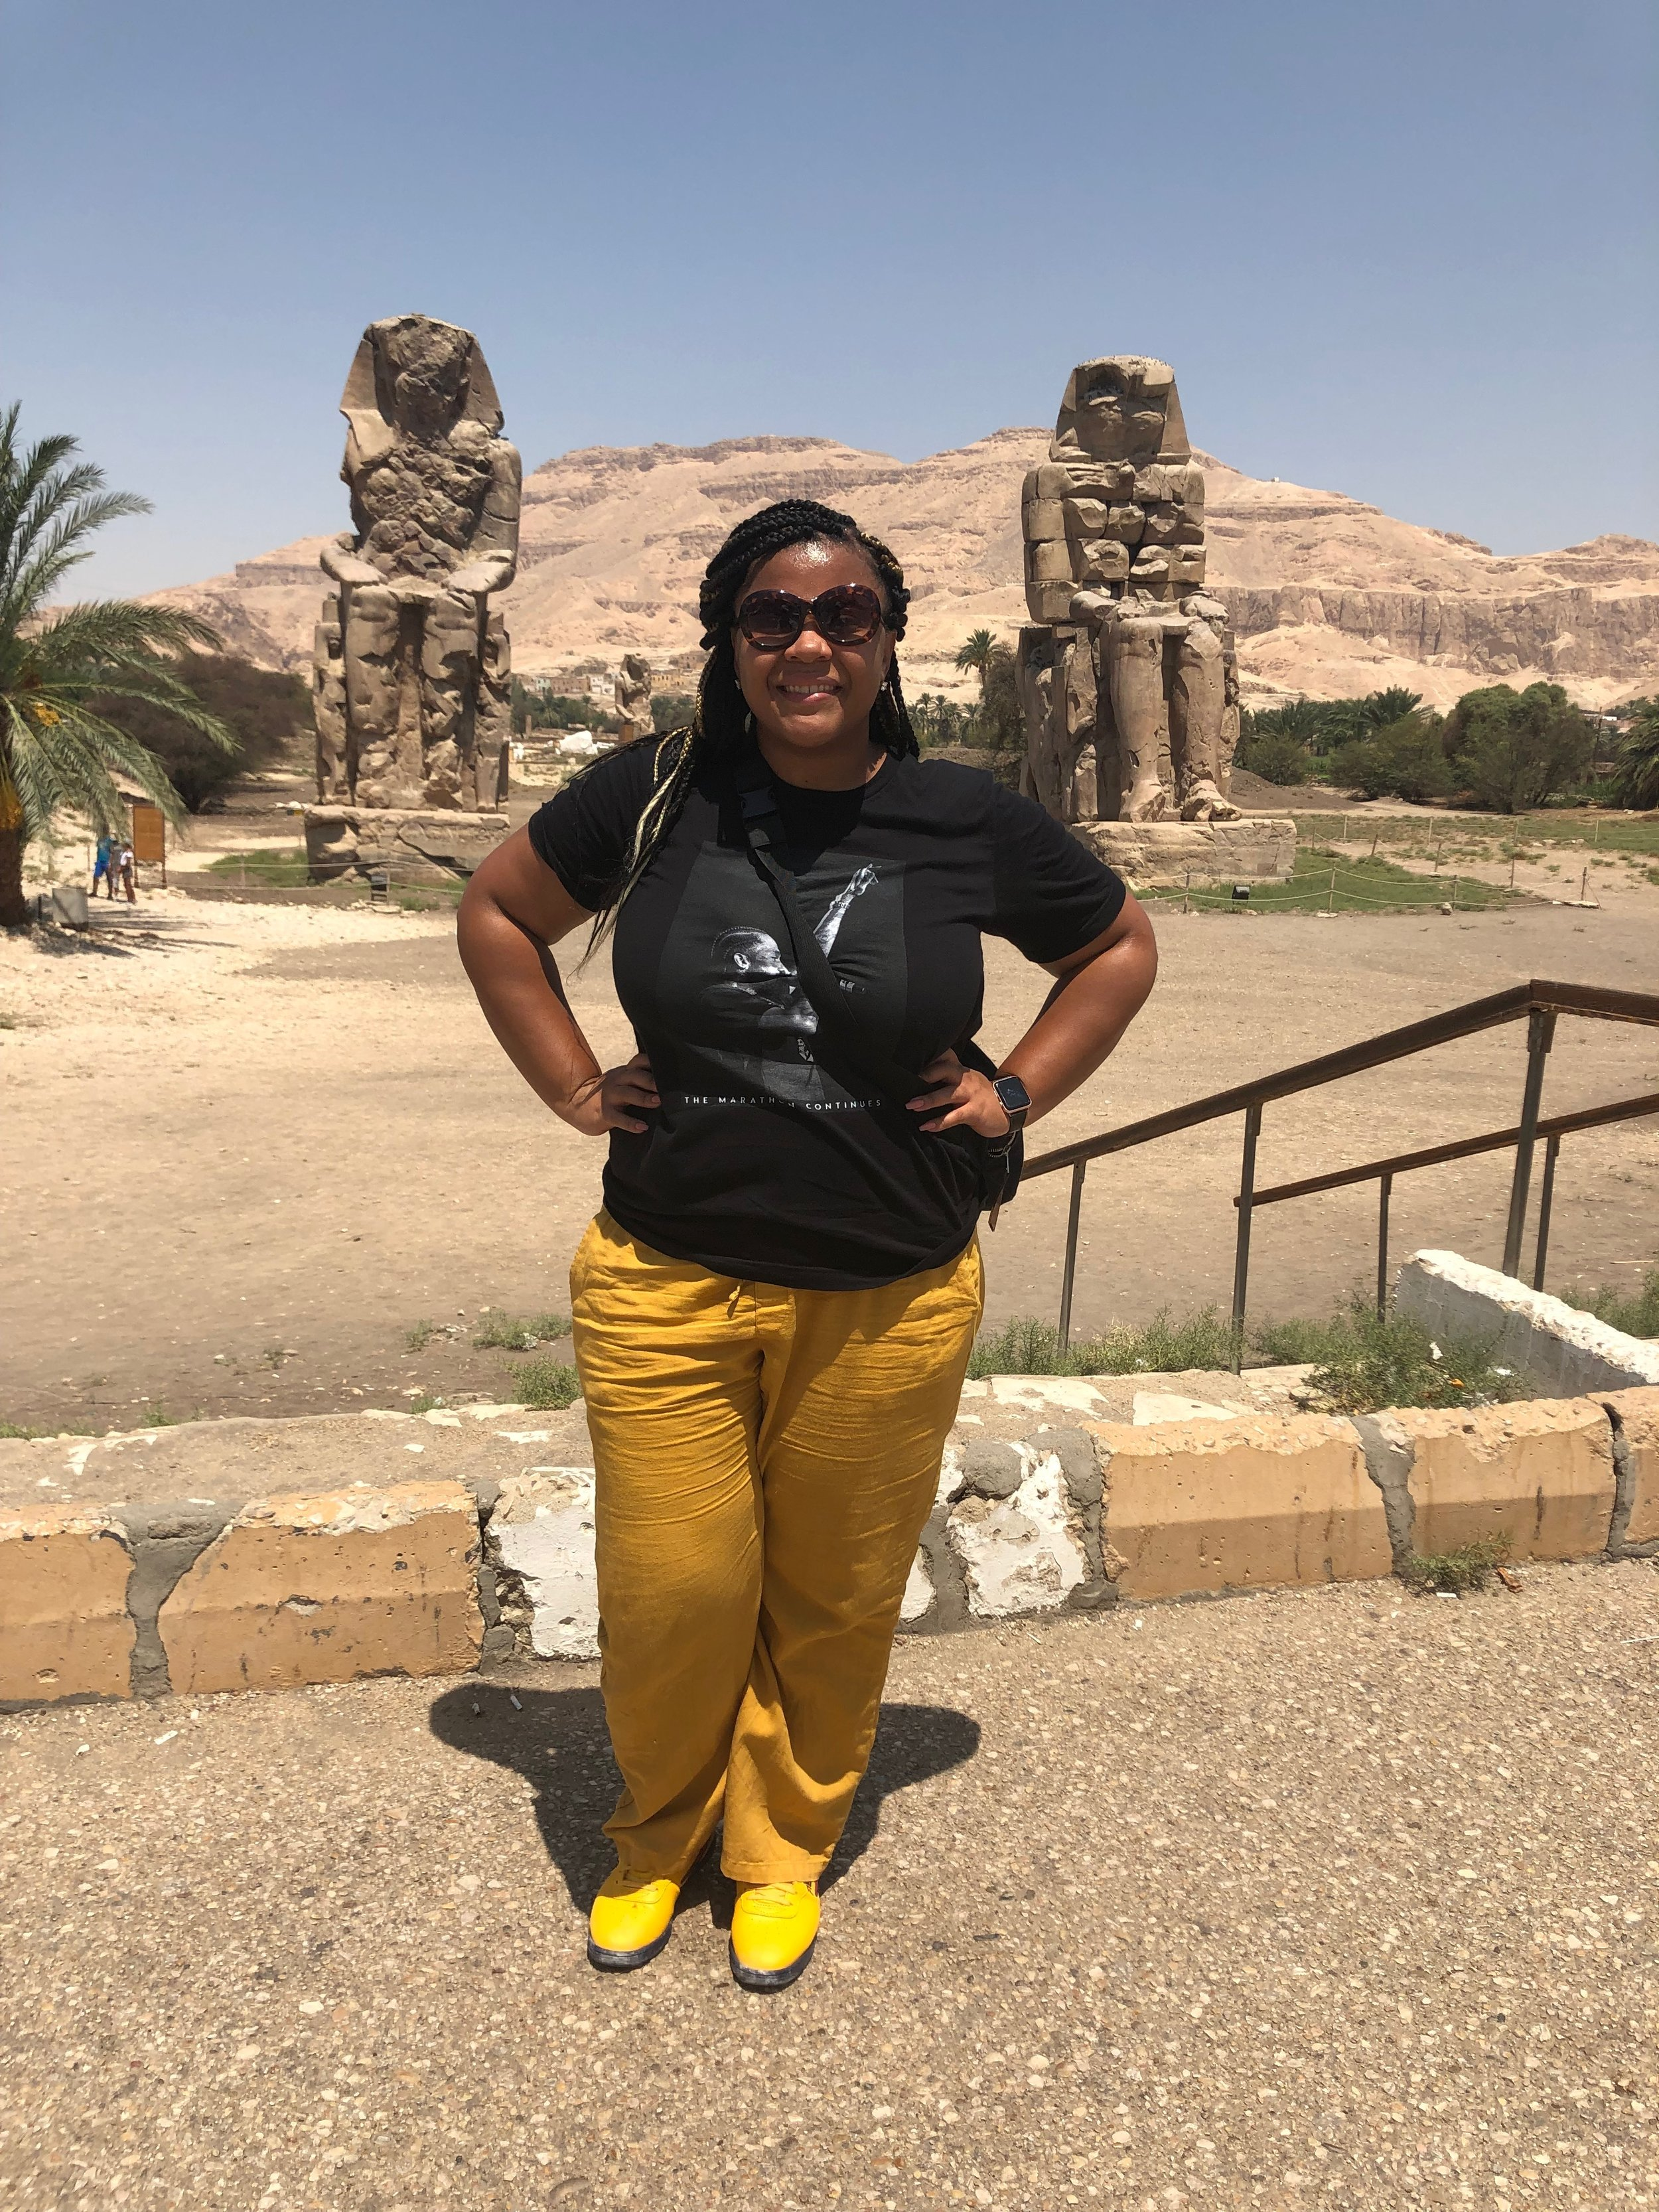 Hopped out of the car in Luxor to take this quick photo!